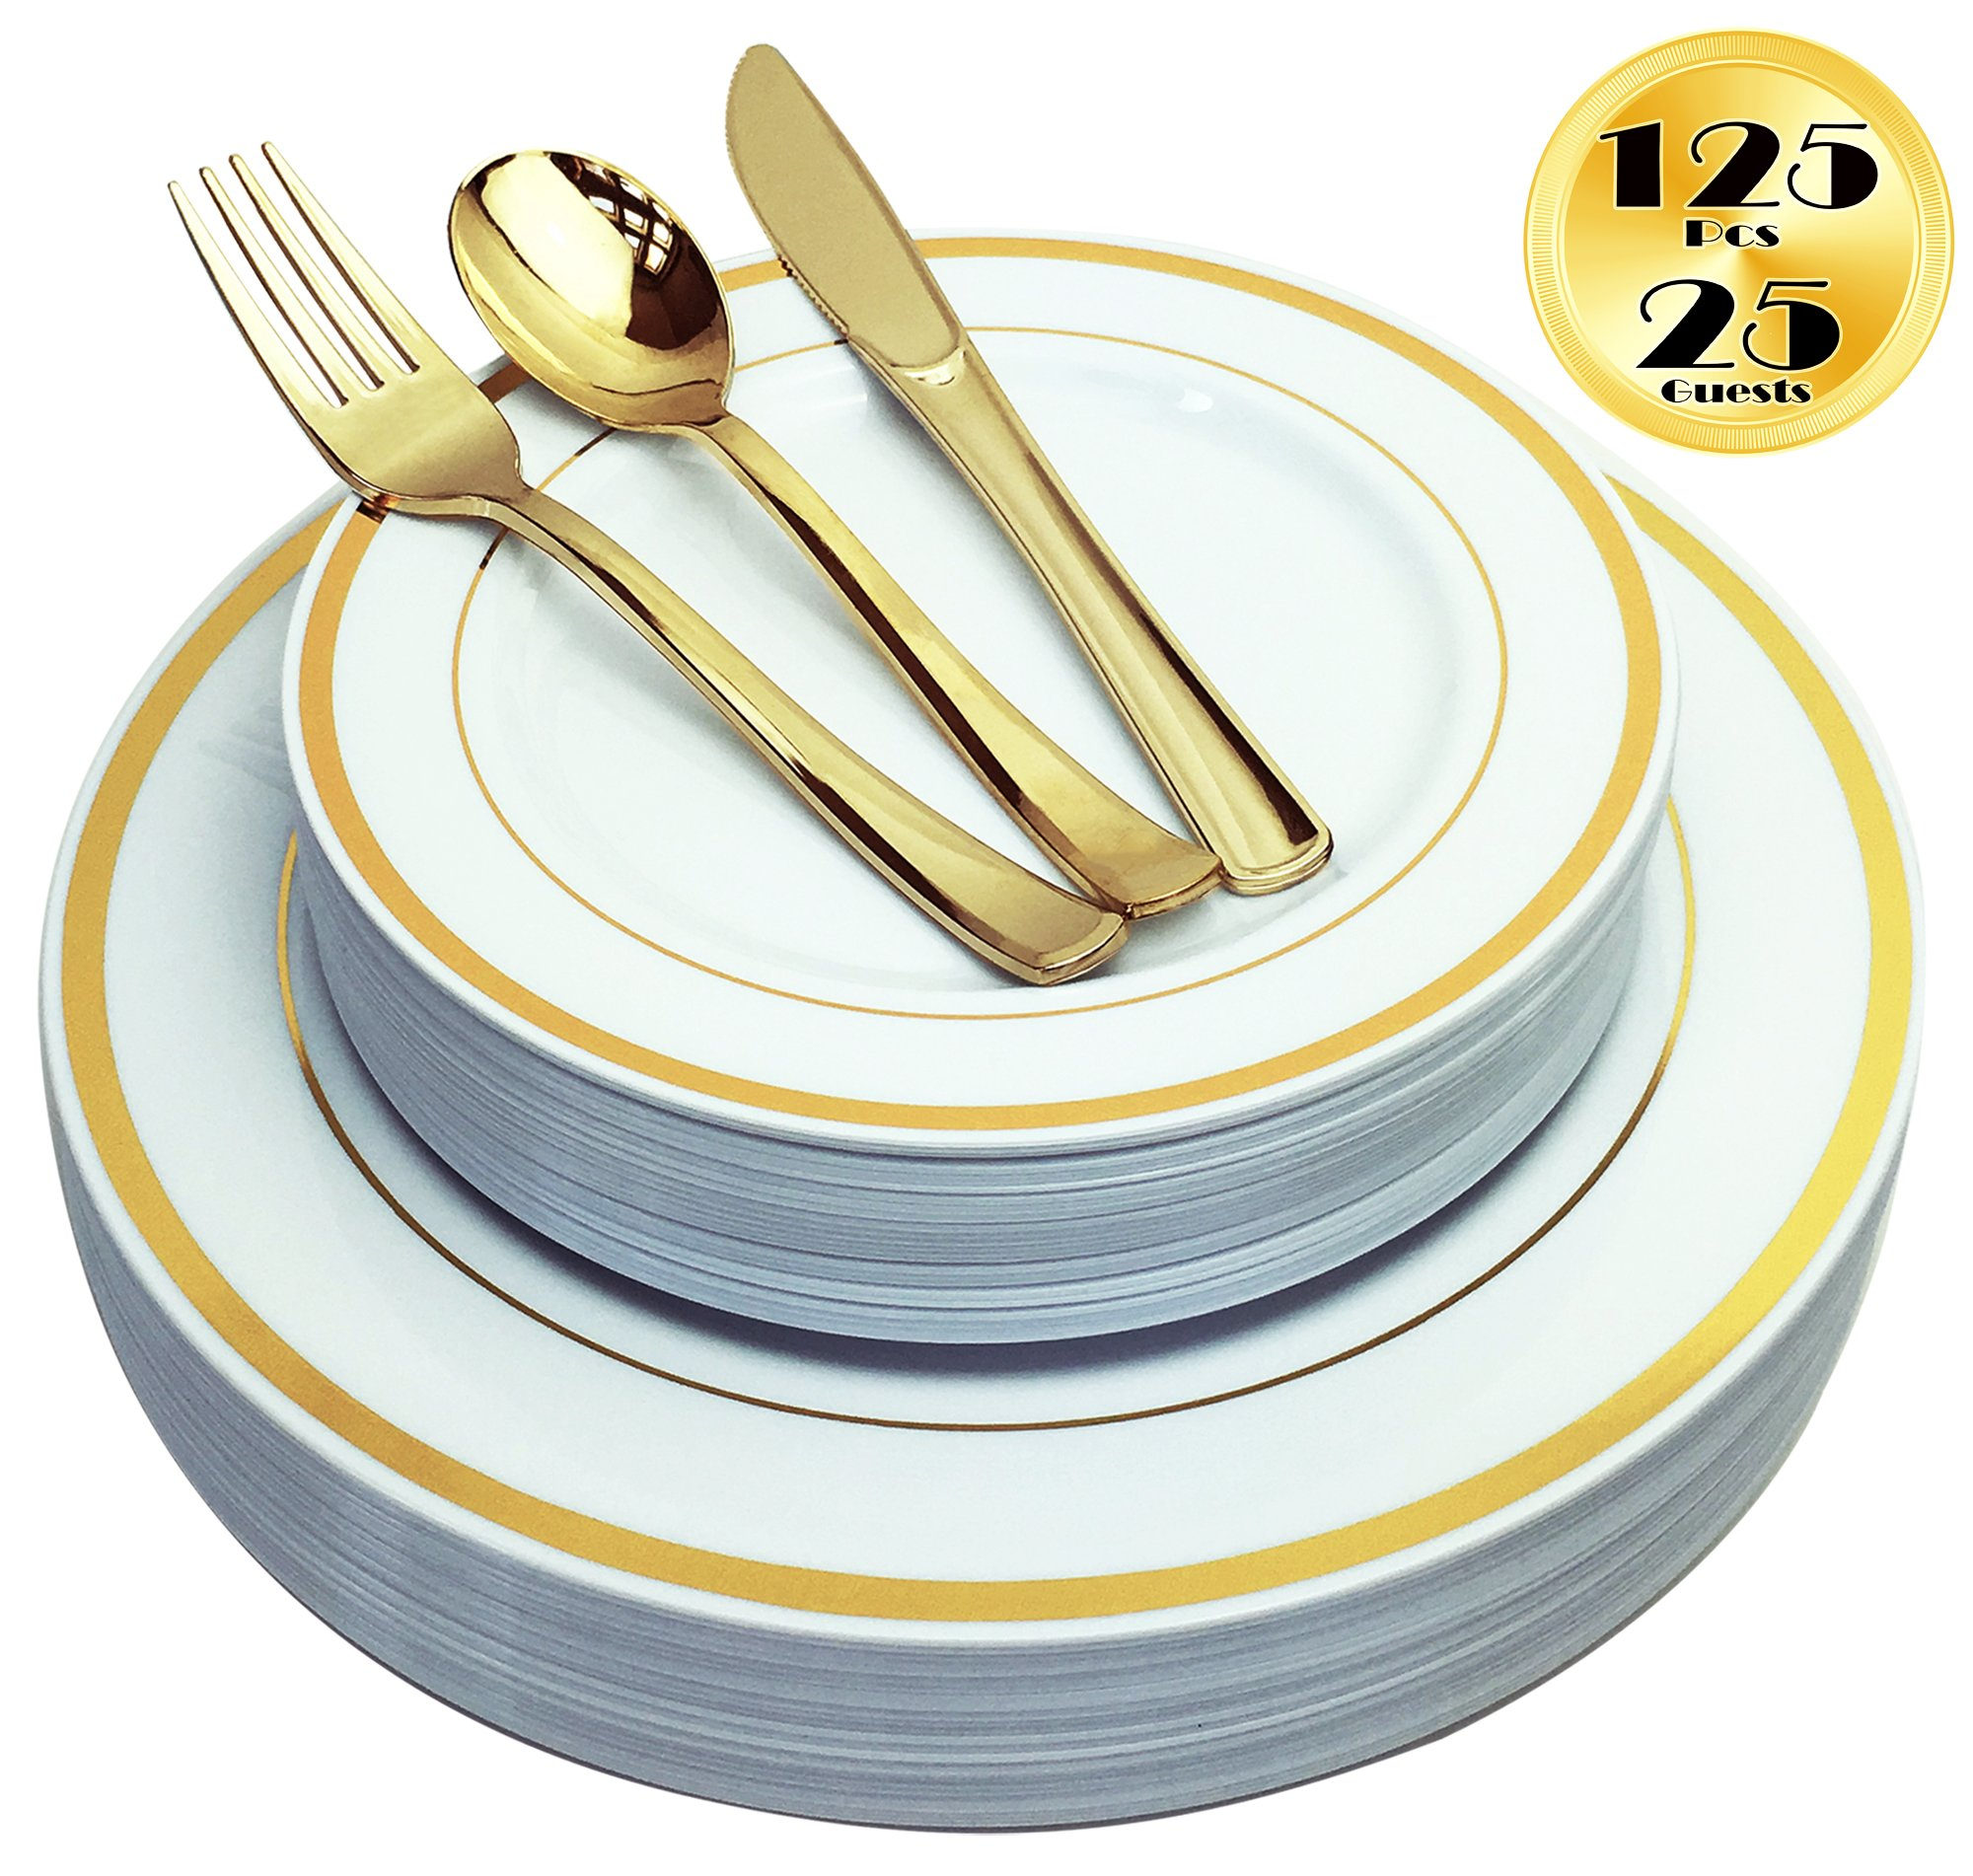 Value Pack 30 Count Premium Quality Heavyweight Plastic Plates China Like Crystal Clear Wedding and Party Dinnerware Plastic Plates 10.25 inch